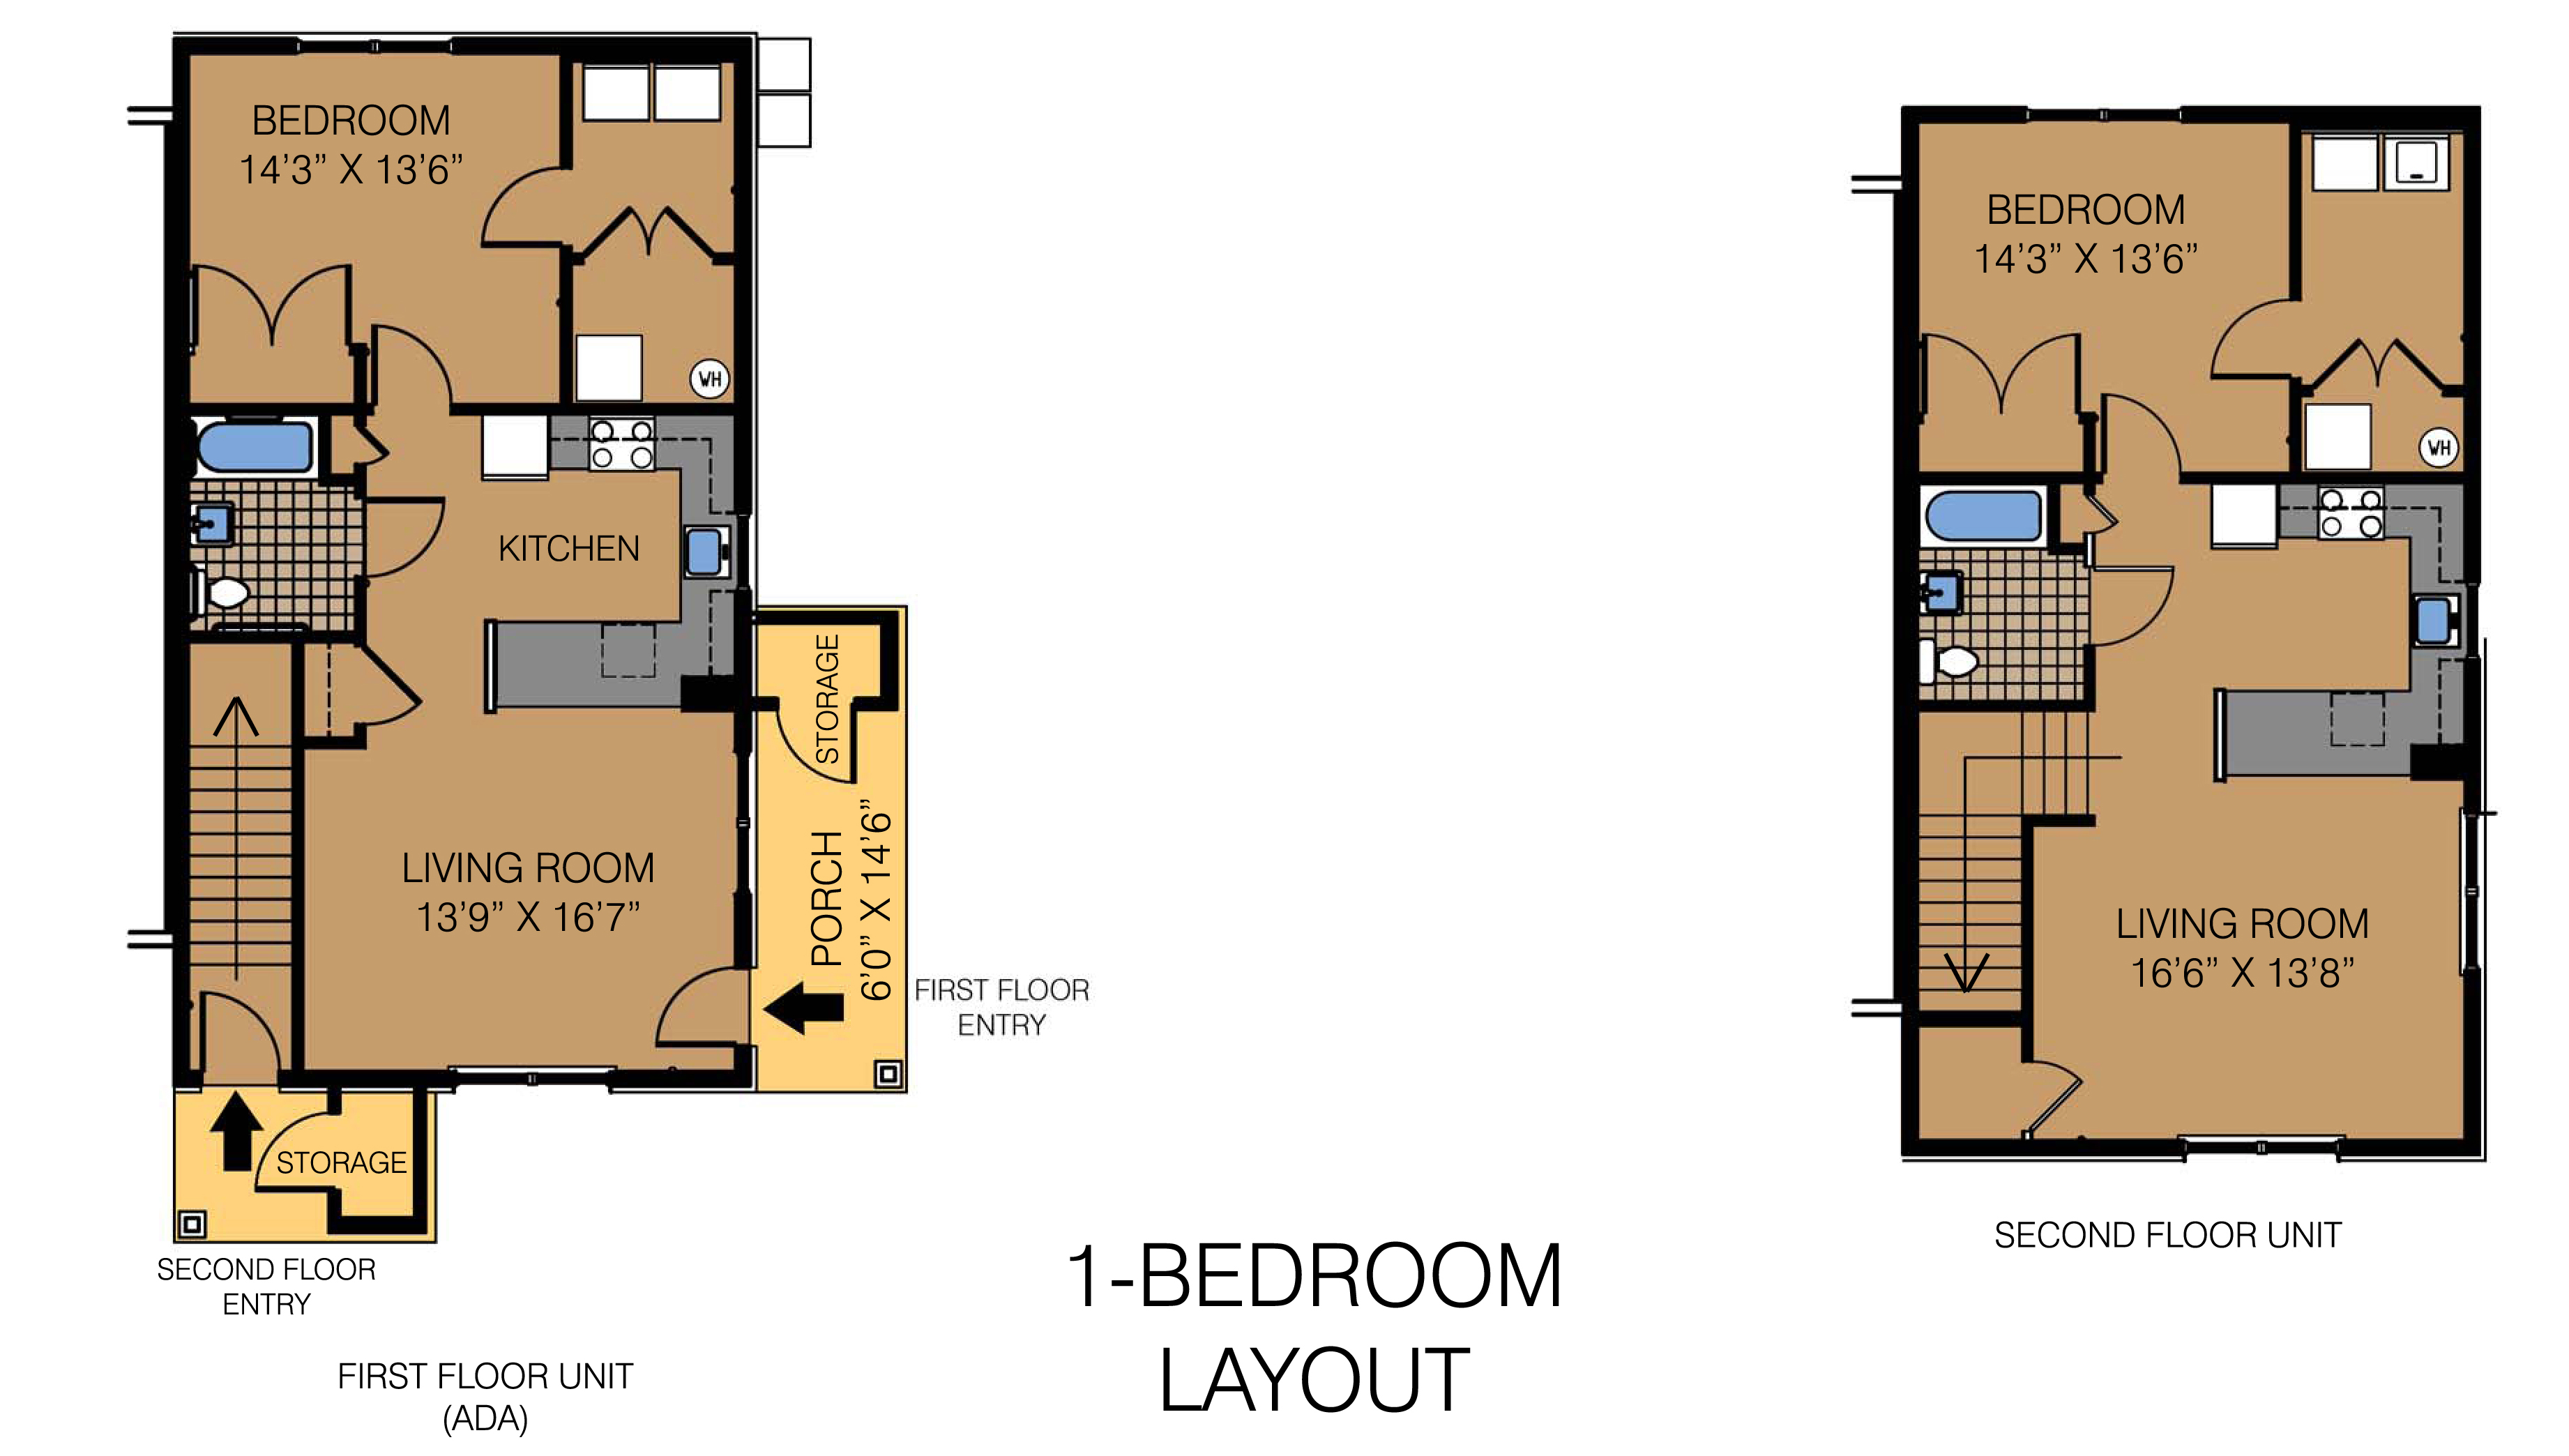 Color Layout 1 Bedroom.jpg (1)